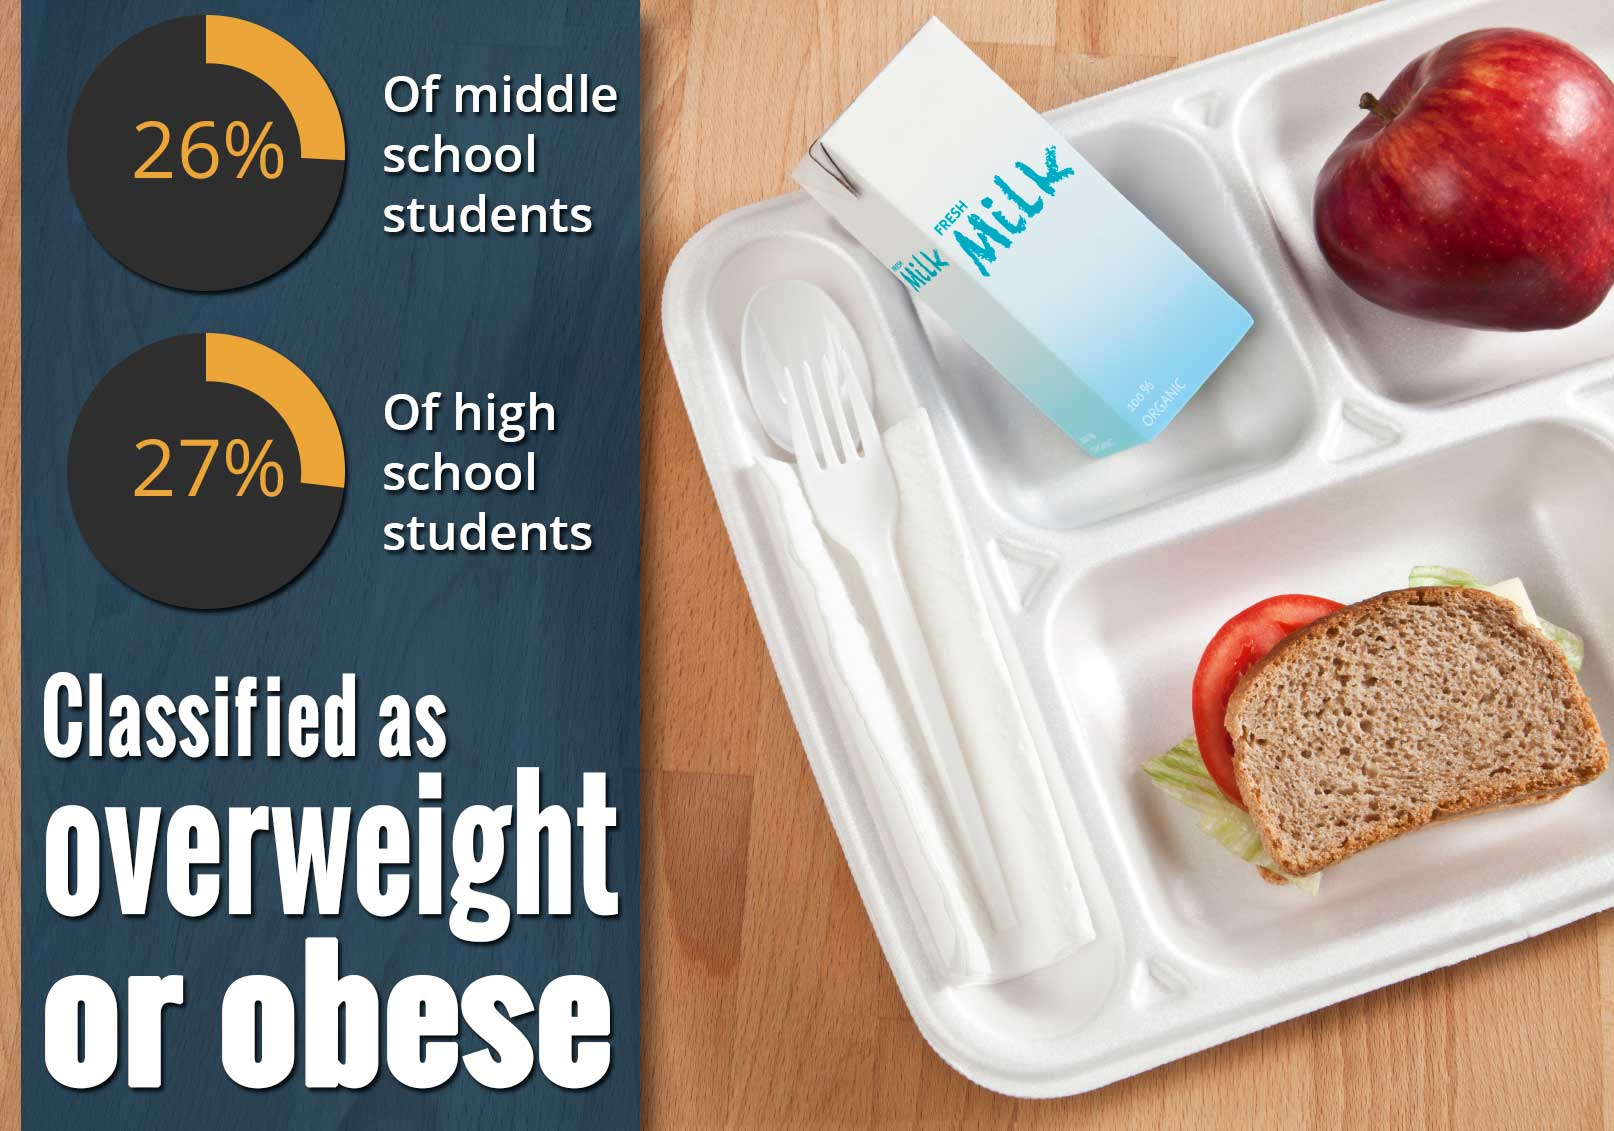 26% of middle school and 27% of high school students are classified as overweight or obese.